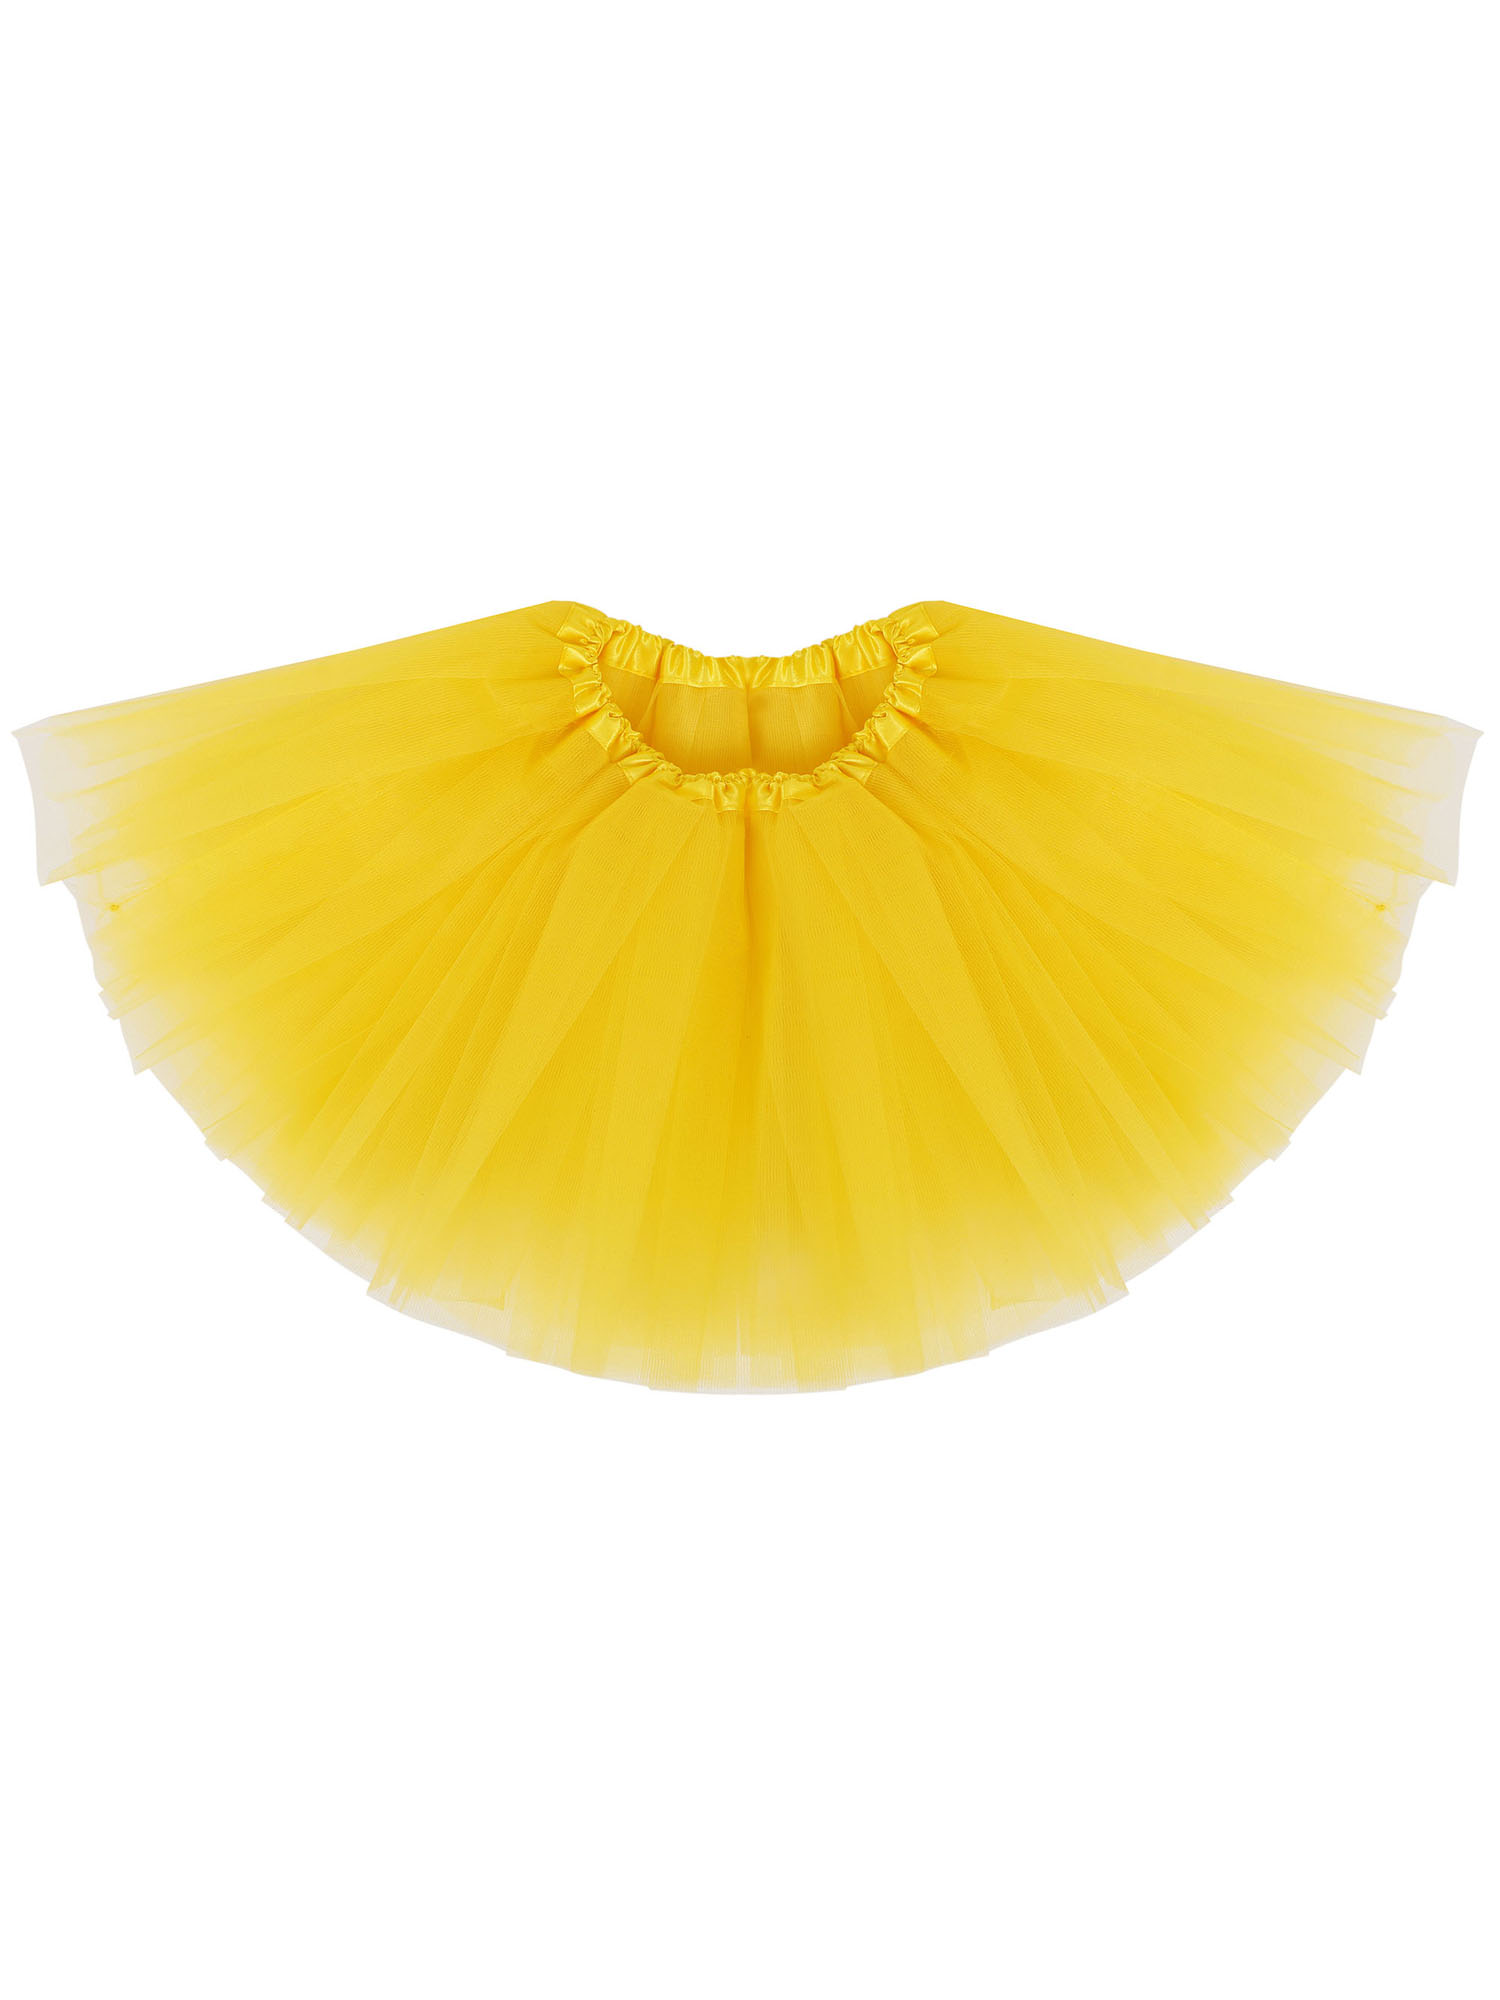 Simplicity Baby 5 Layered Tulle Tutu Skirt for Dress Up & Fairy Costumes,Yellow